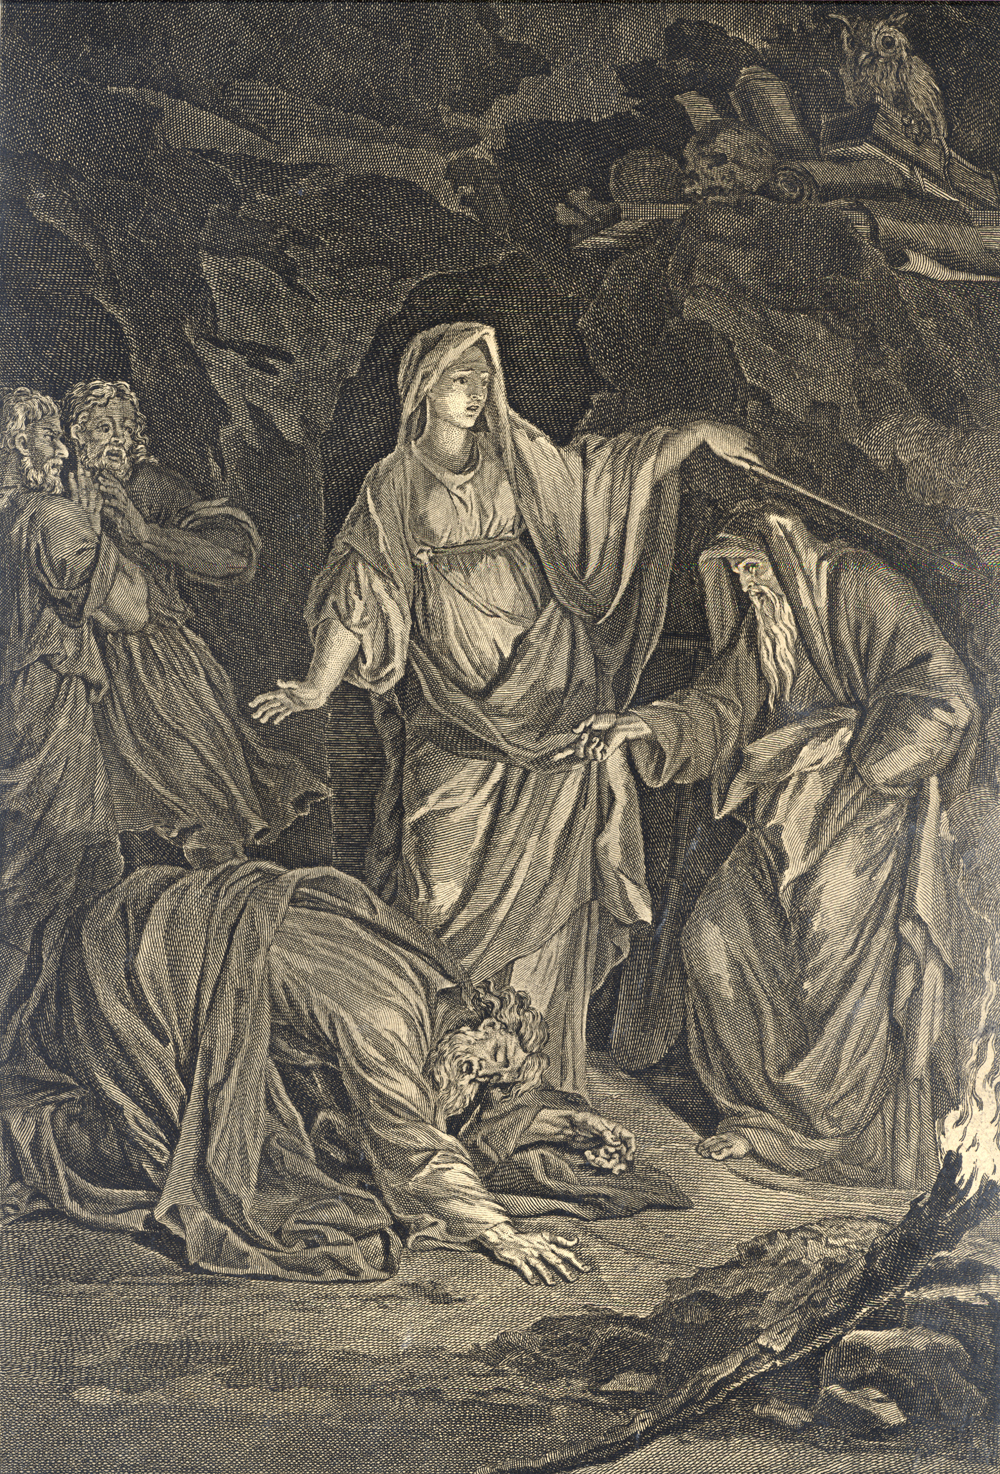 Reflection - King Saul and the Witch of Endor, posted on Sunday, 22 May 2016